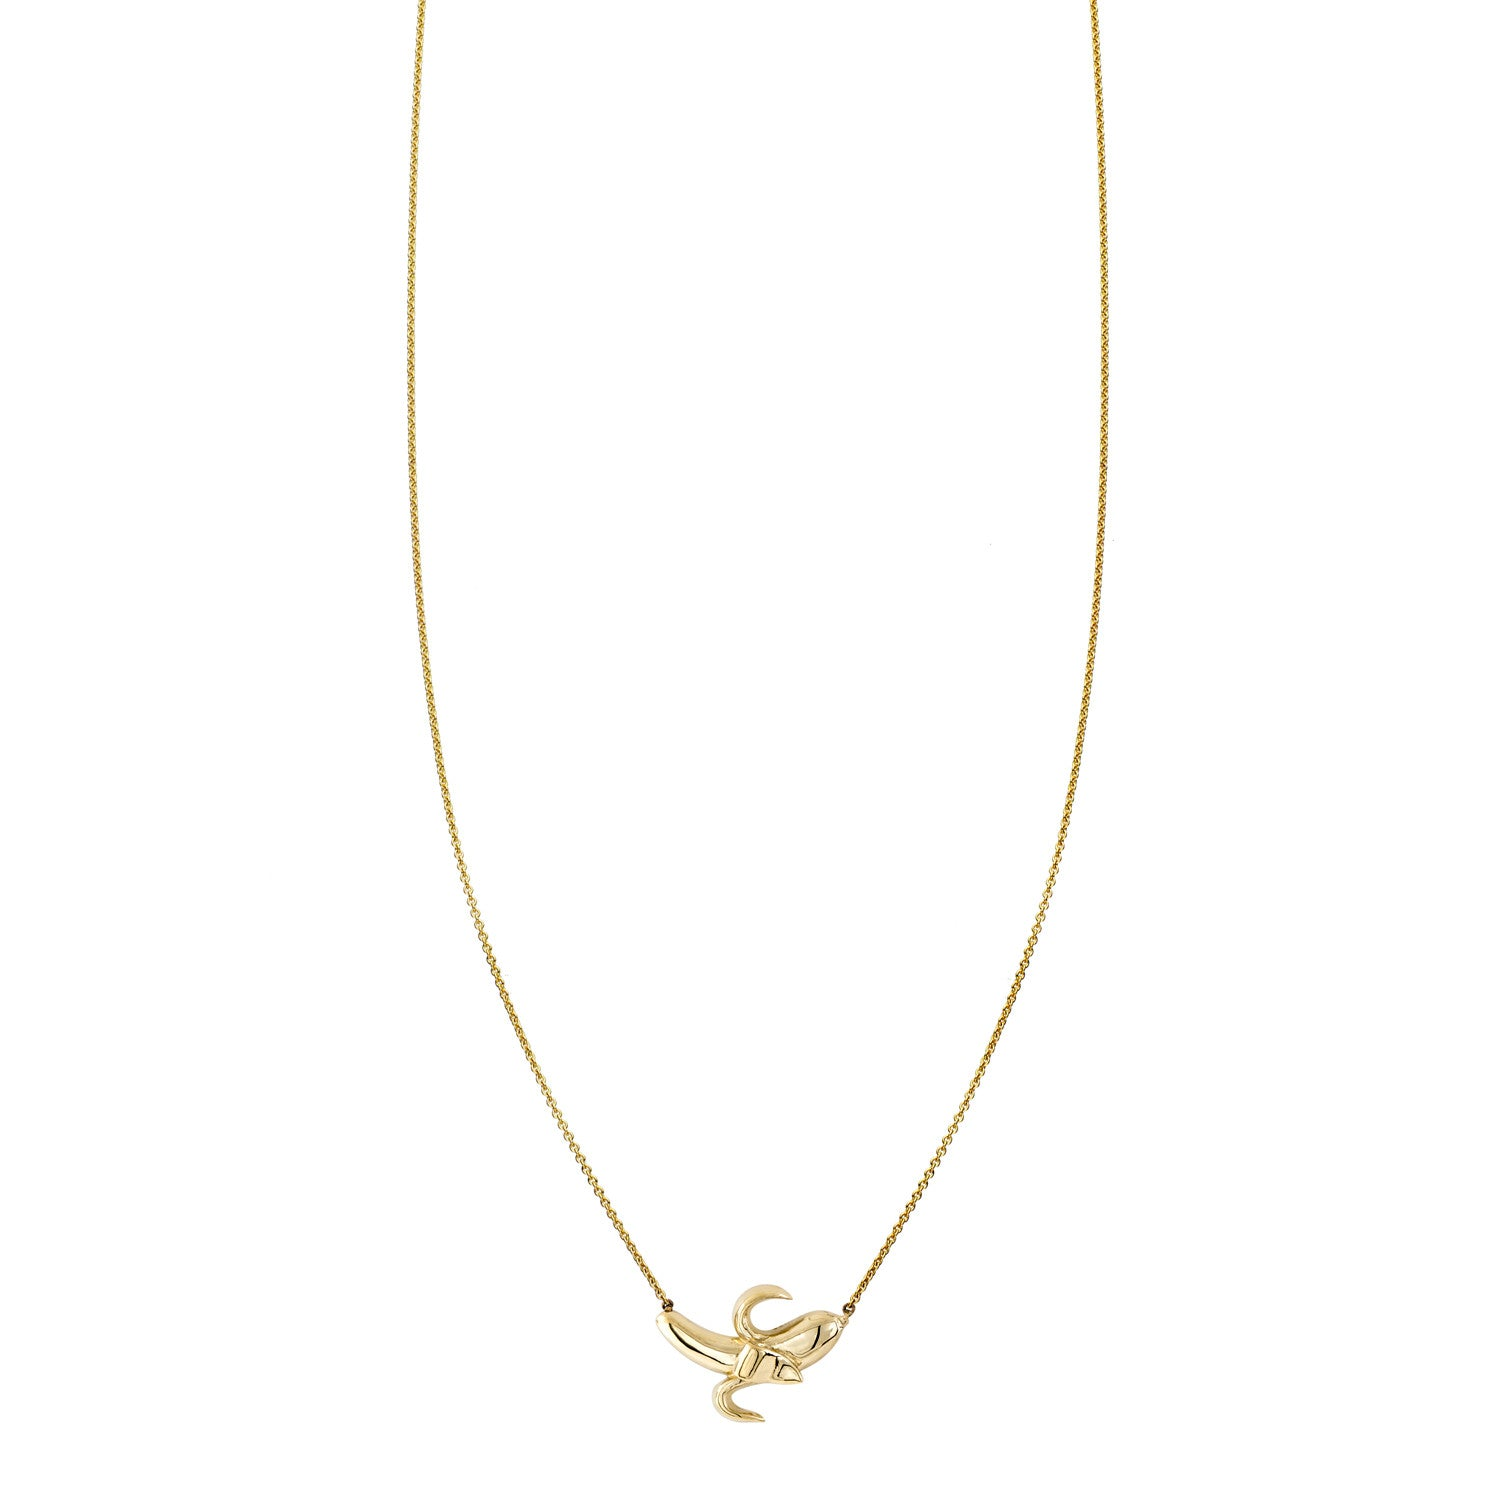 Gold peeled banana charm pendant necklace